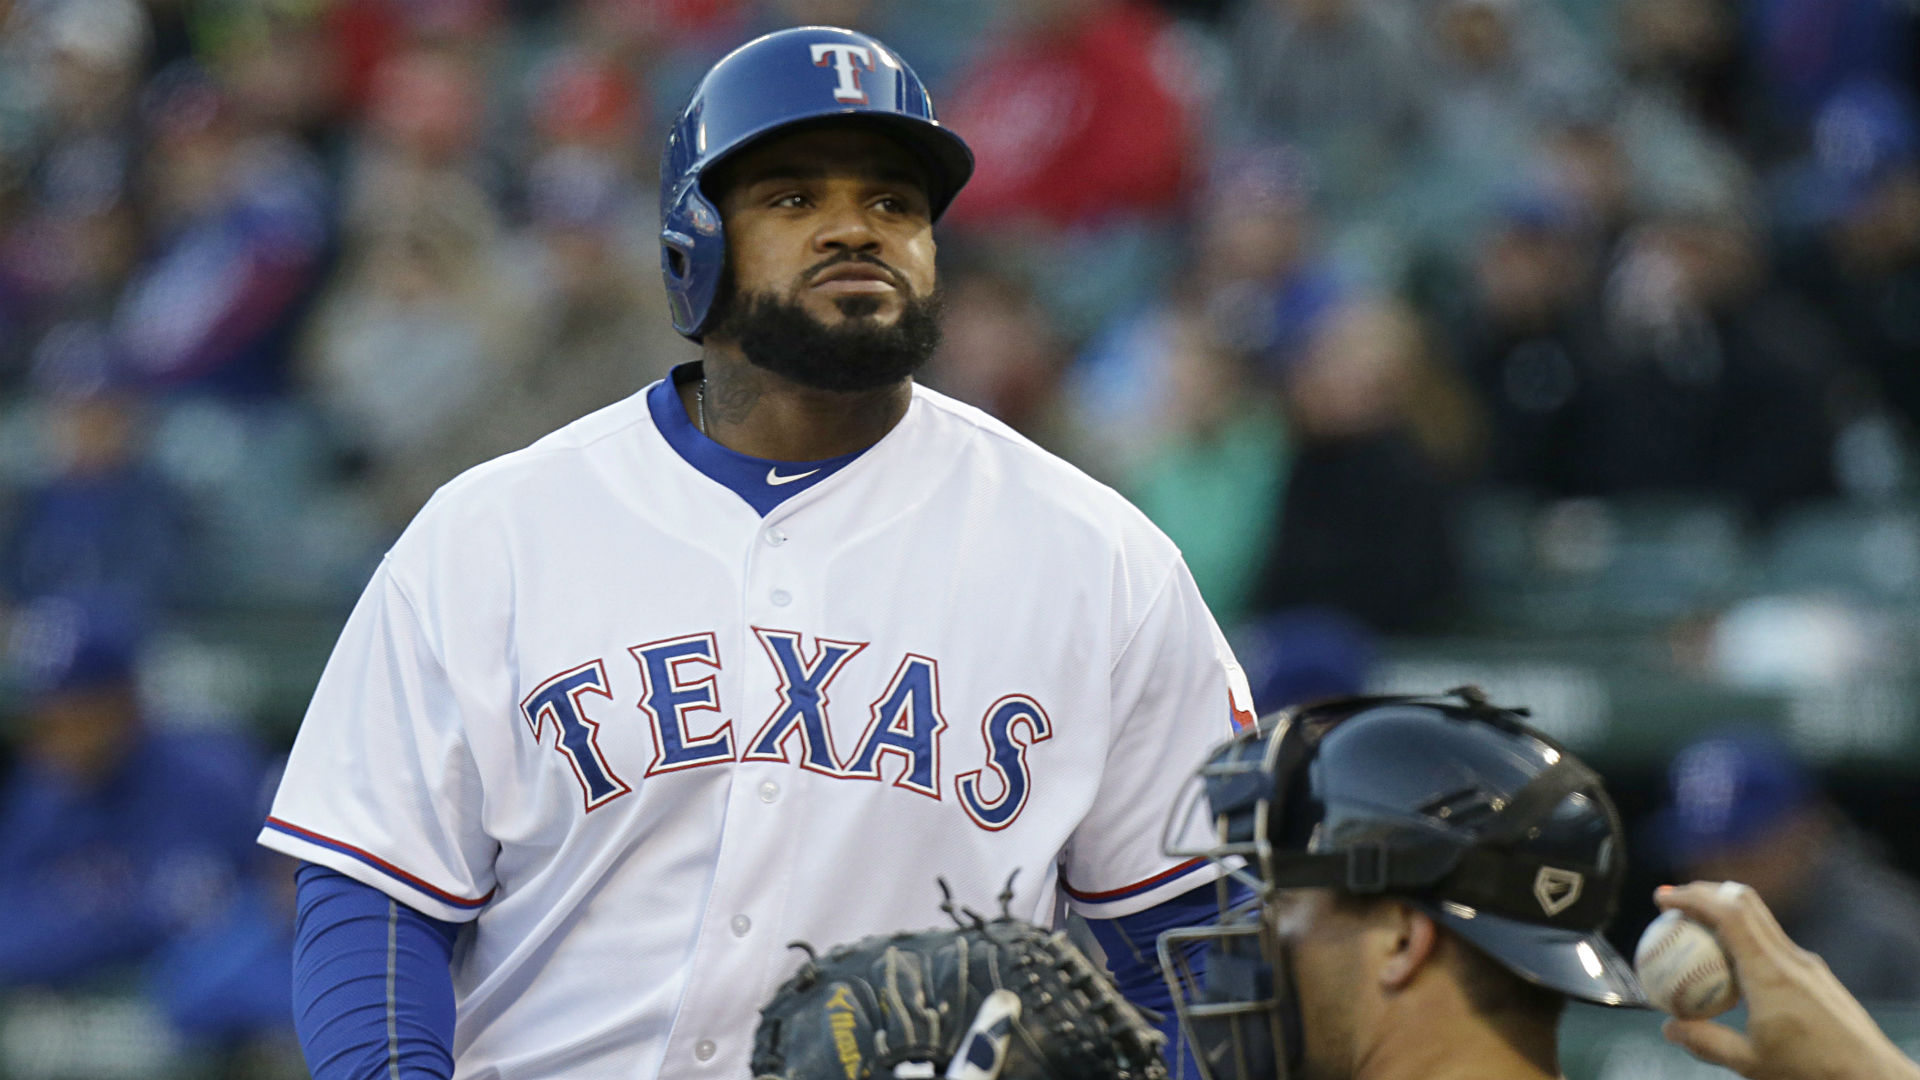 Injury Report: Rangers' Fielder needs season-ending surgery